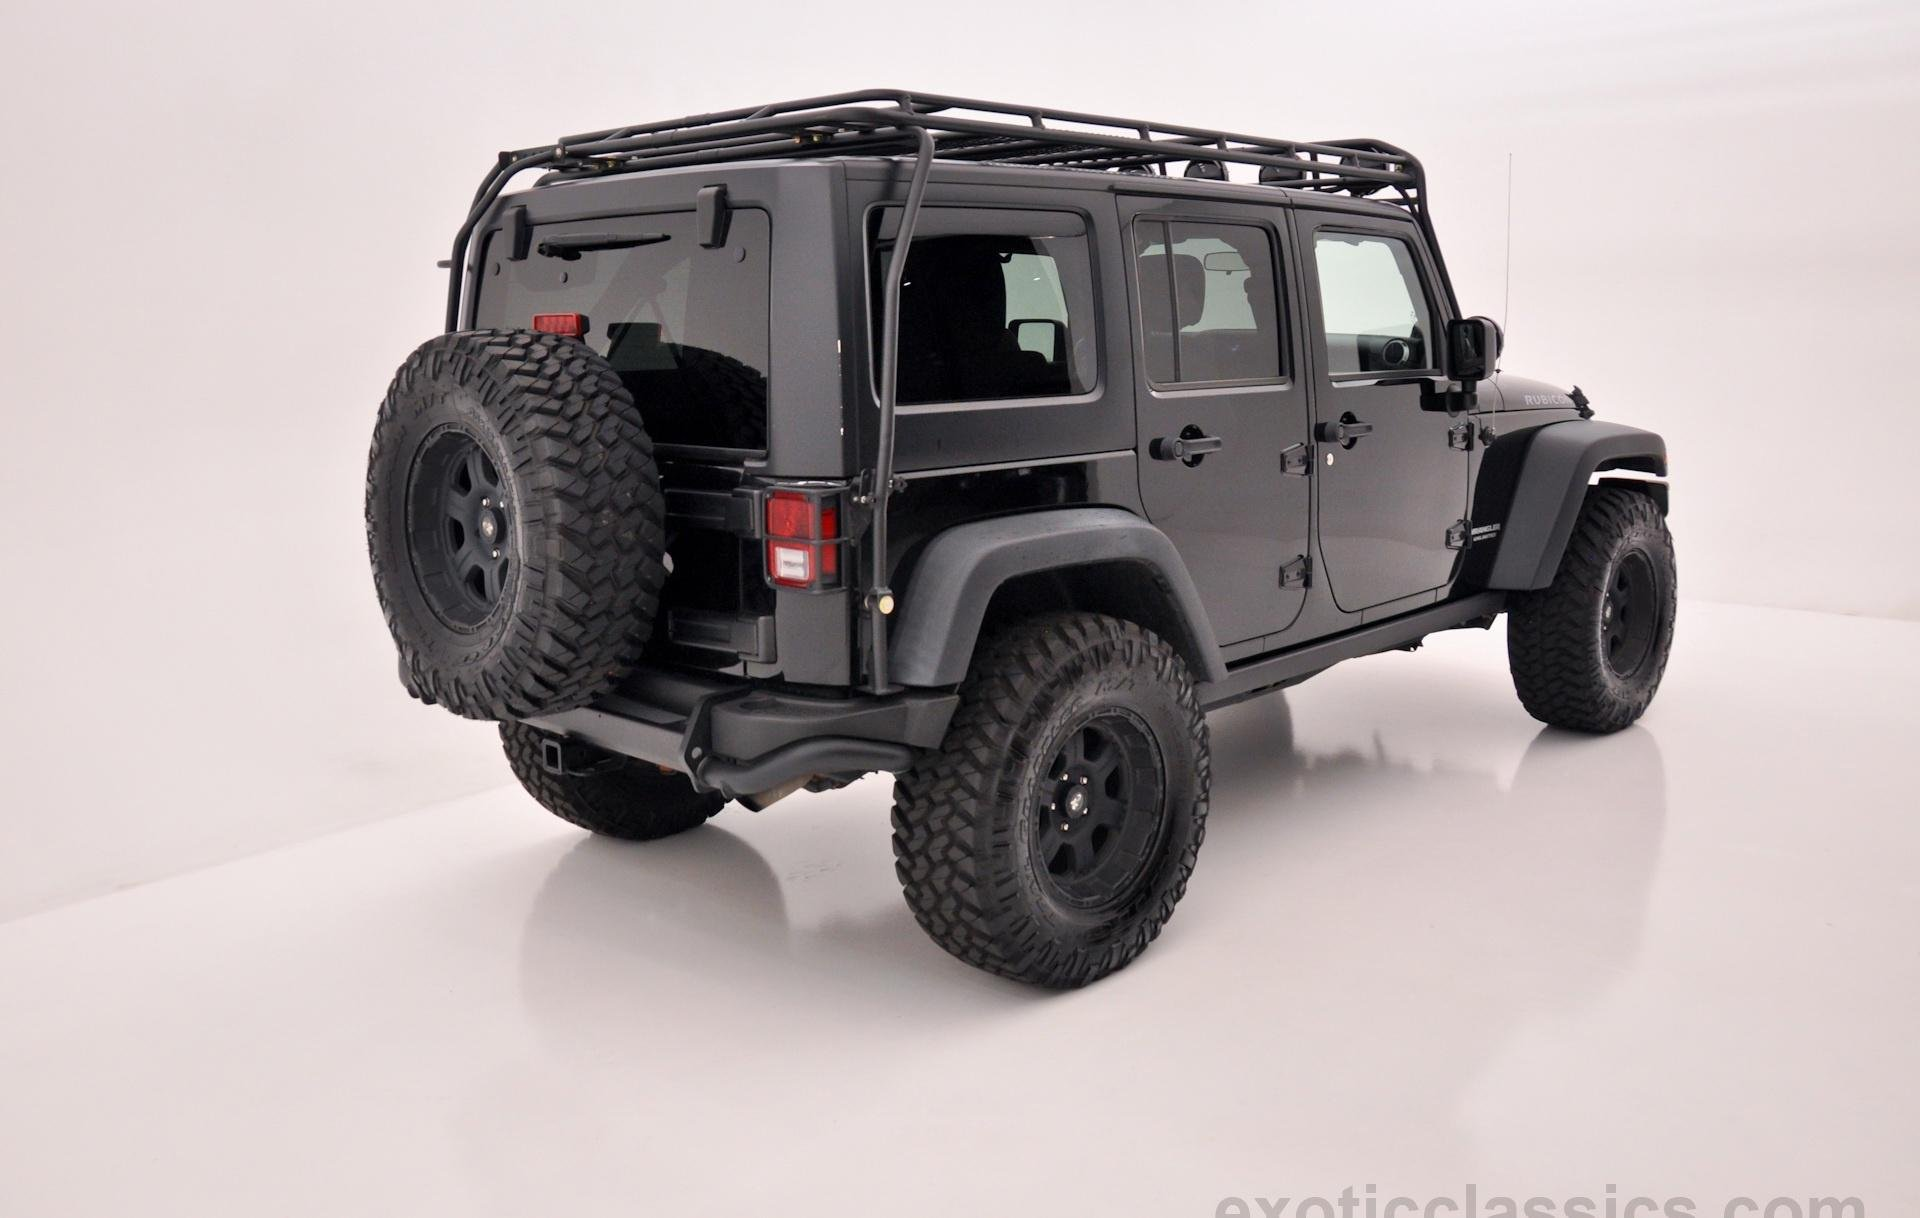 2011 Jeep Wrangler Unlimited Rubicon Black 4wd all road 4x4 cars